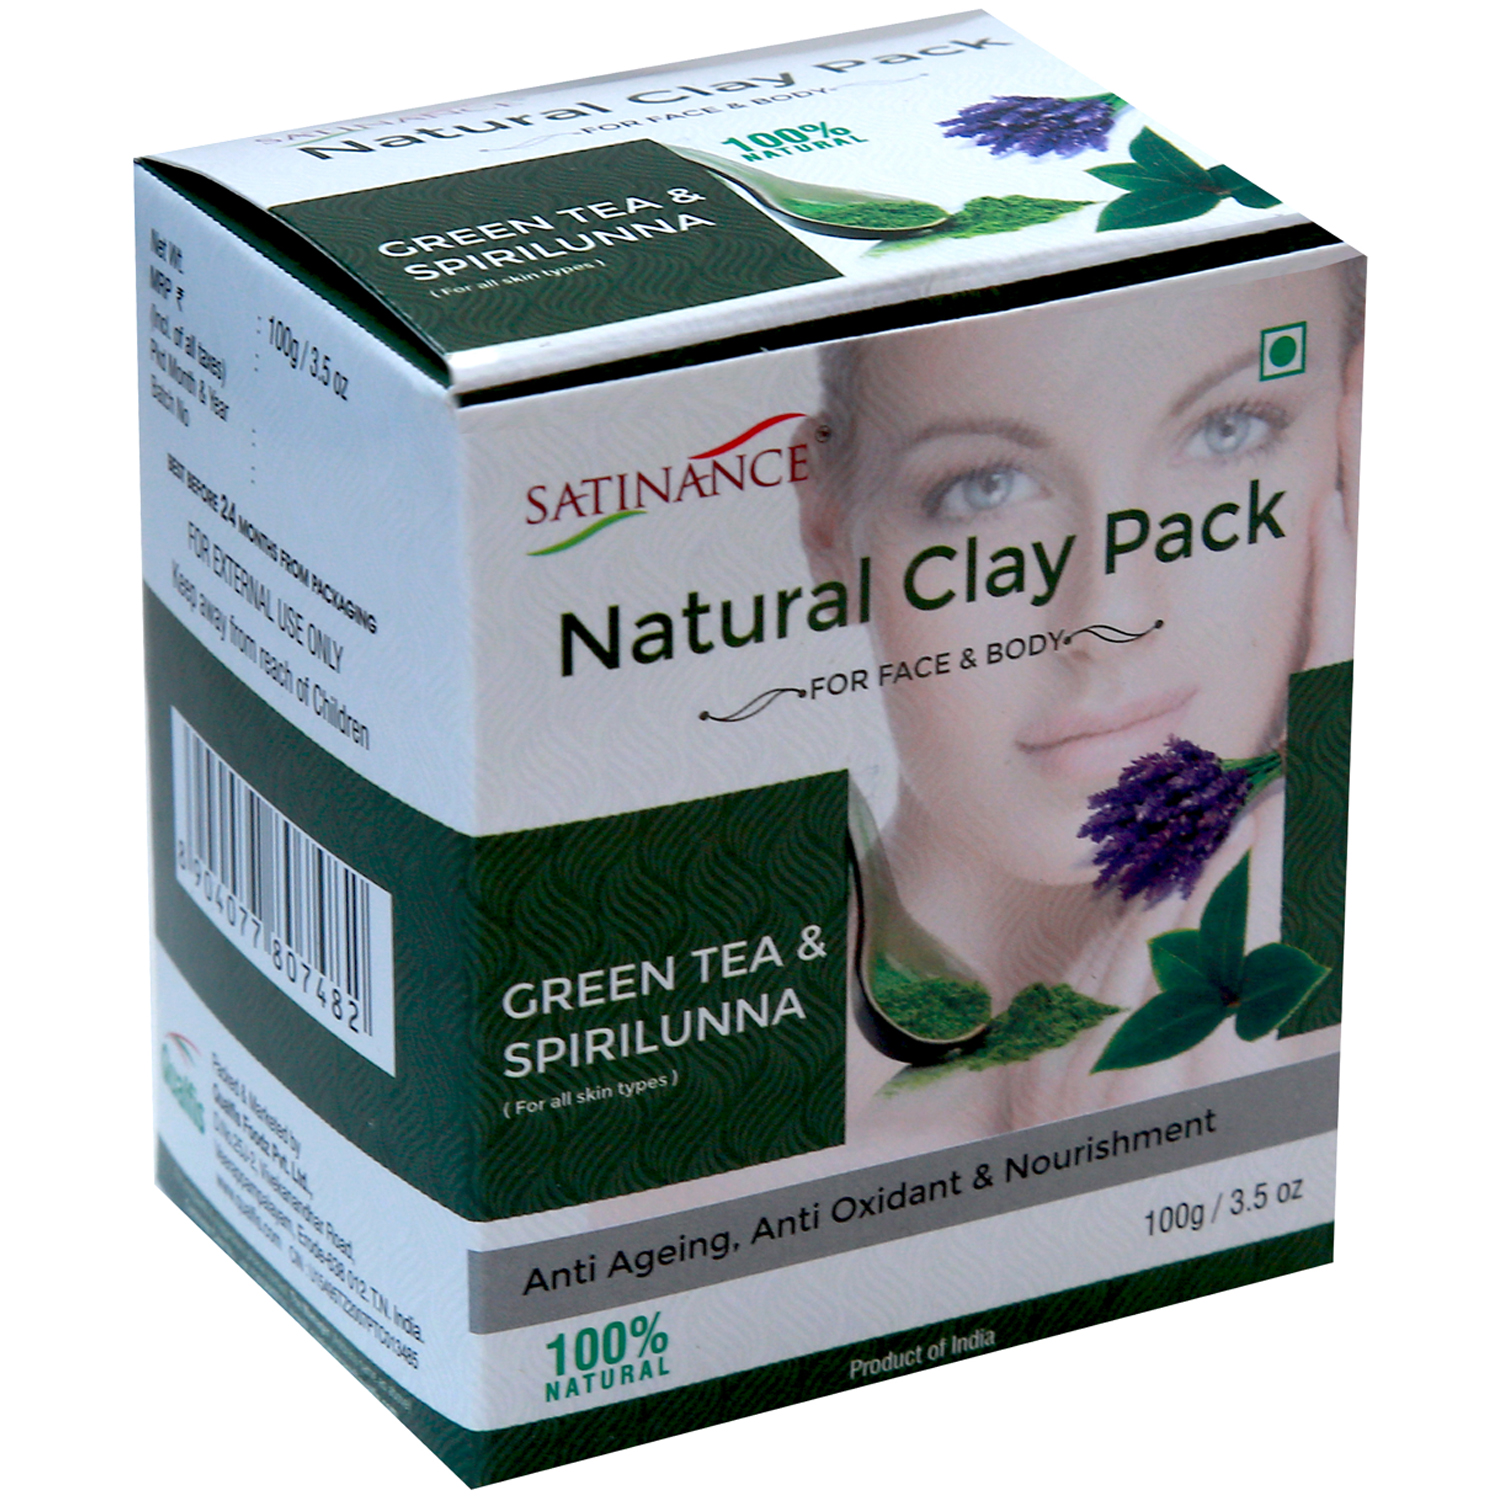 Natural Clay Pack Green Tea & Spirilunna - 100g ( Anti Ageing, Anti Oxidant & Nourishment)